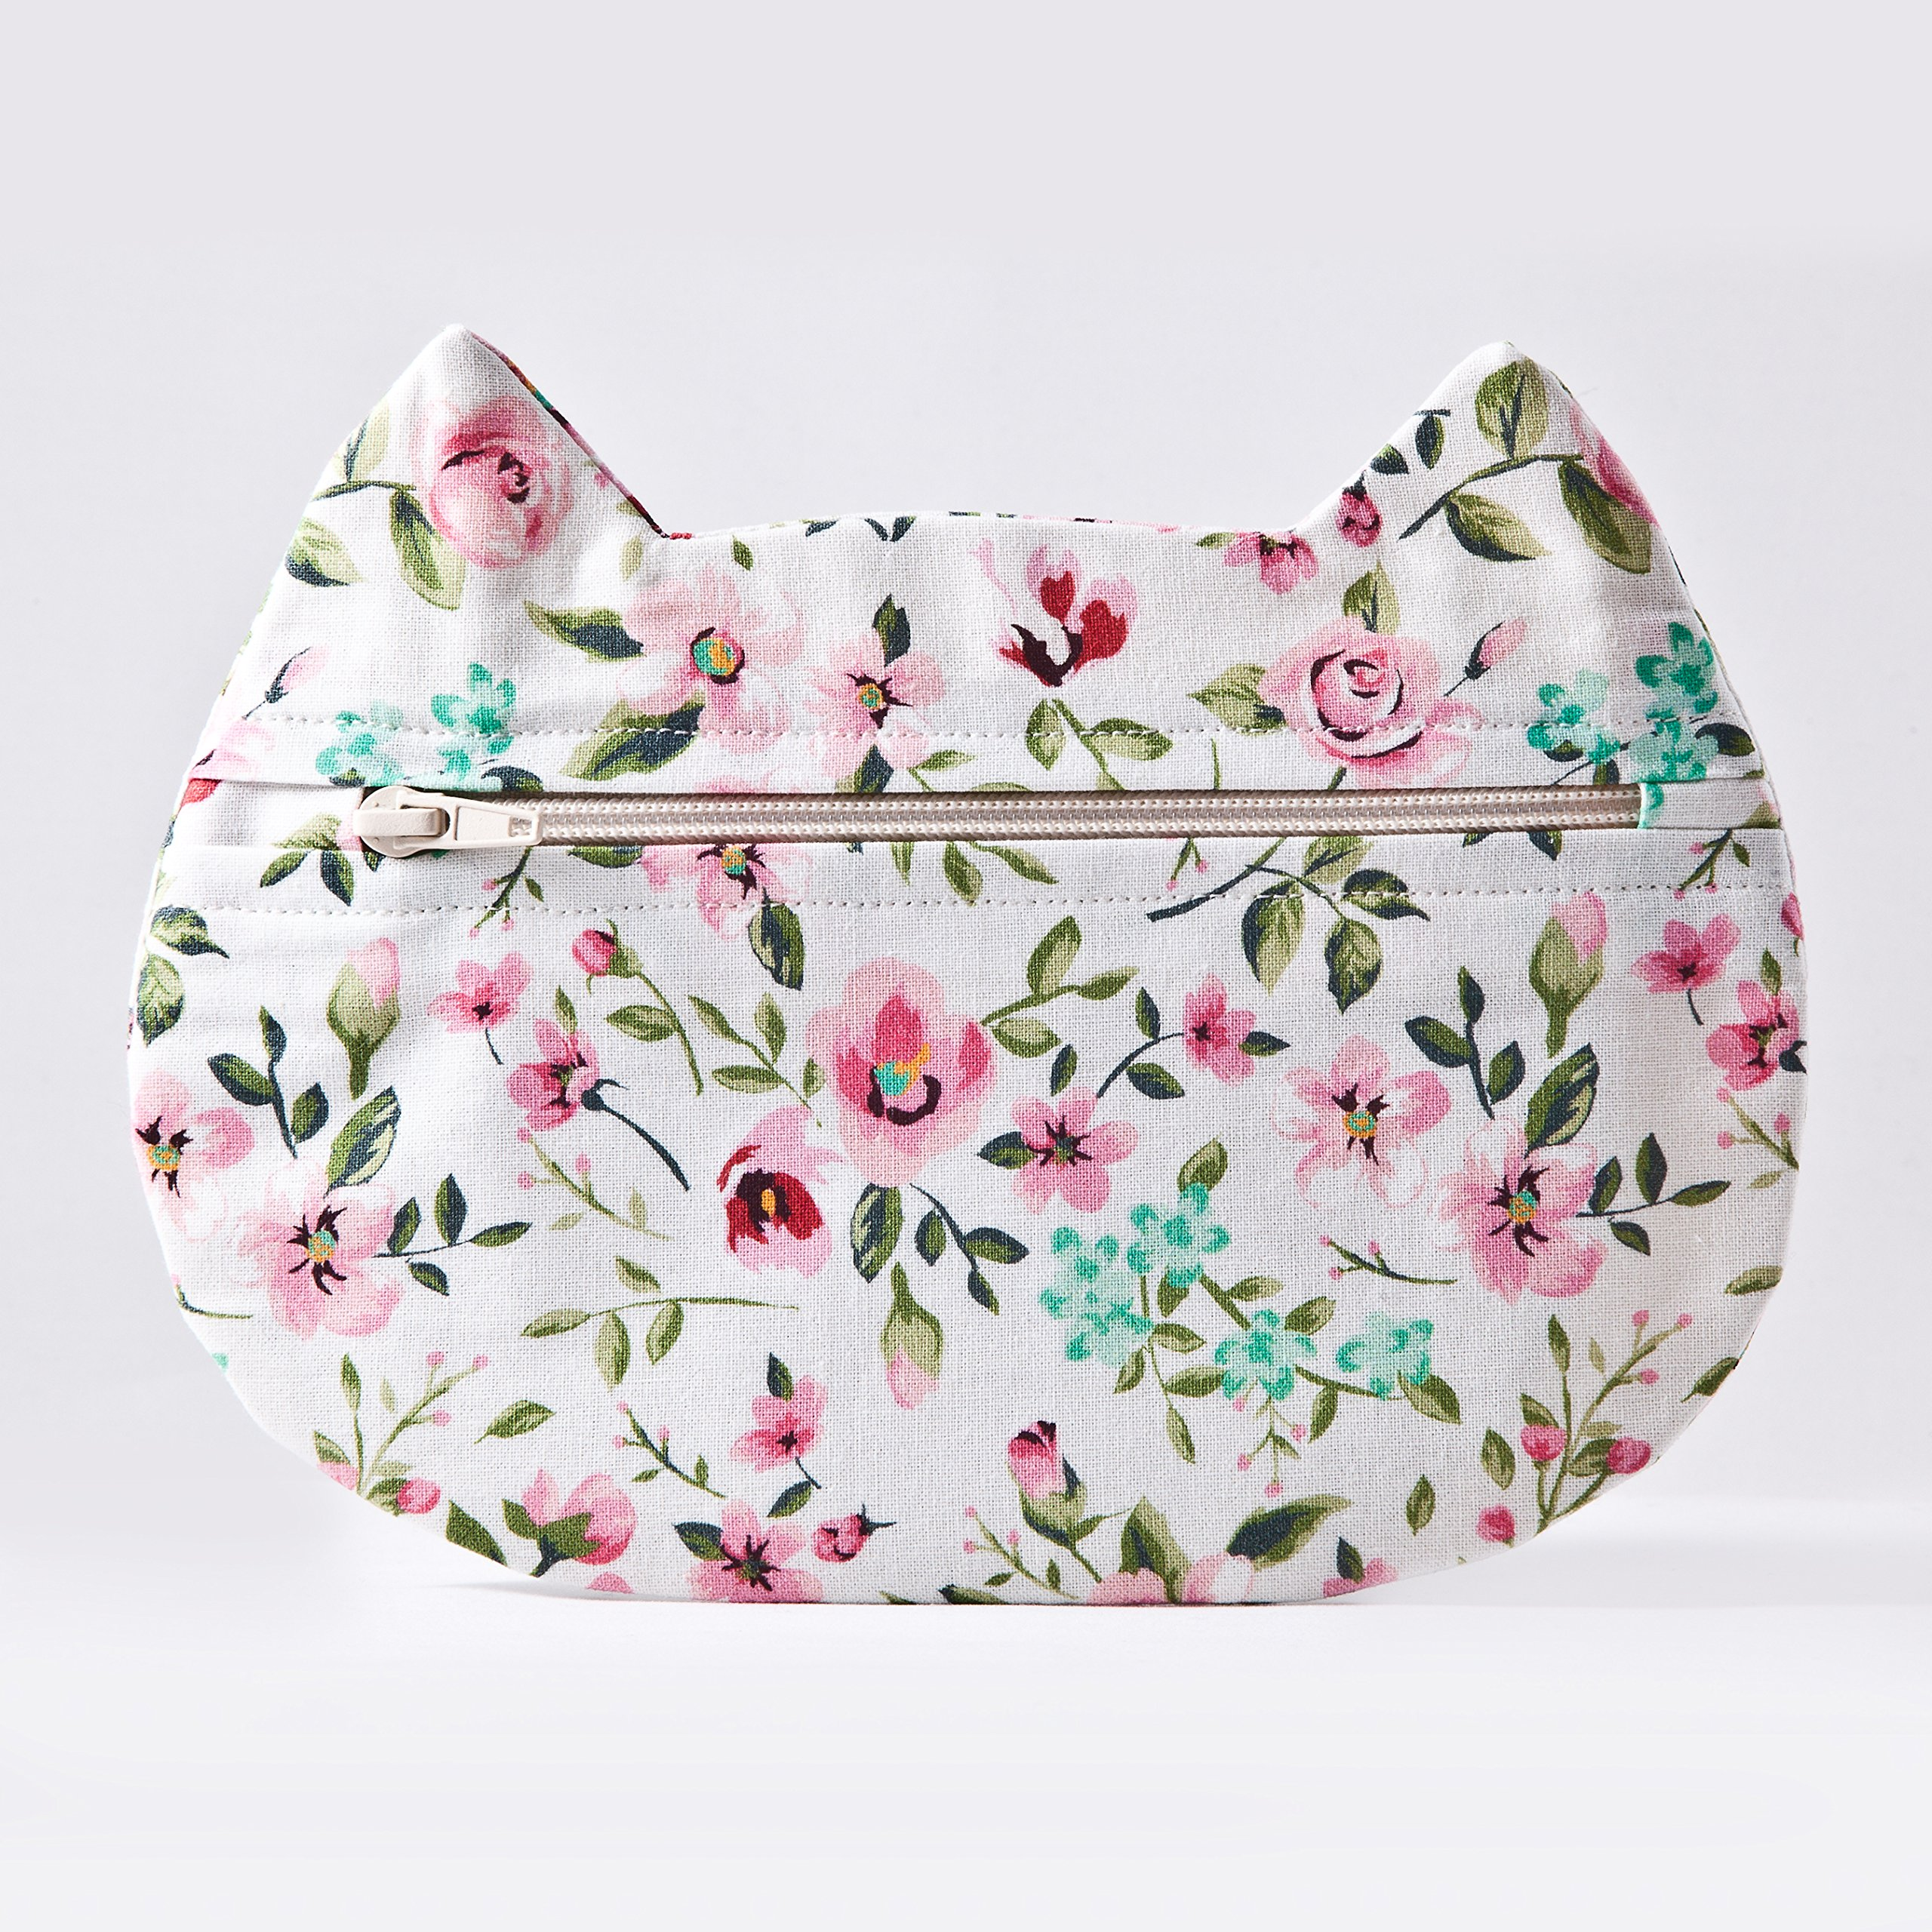 White Floral Cosmetic Bag, Cat Makeup Bag, Pencil Case, Gifts for Travelers, Gray Toiletries Bag, Beauty Bag